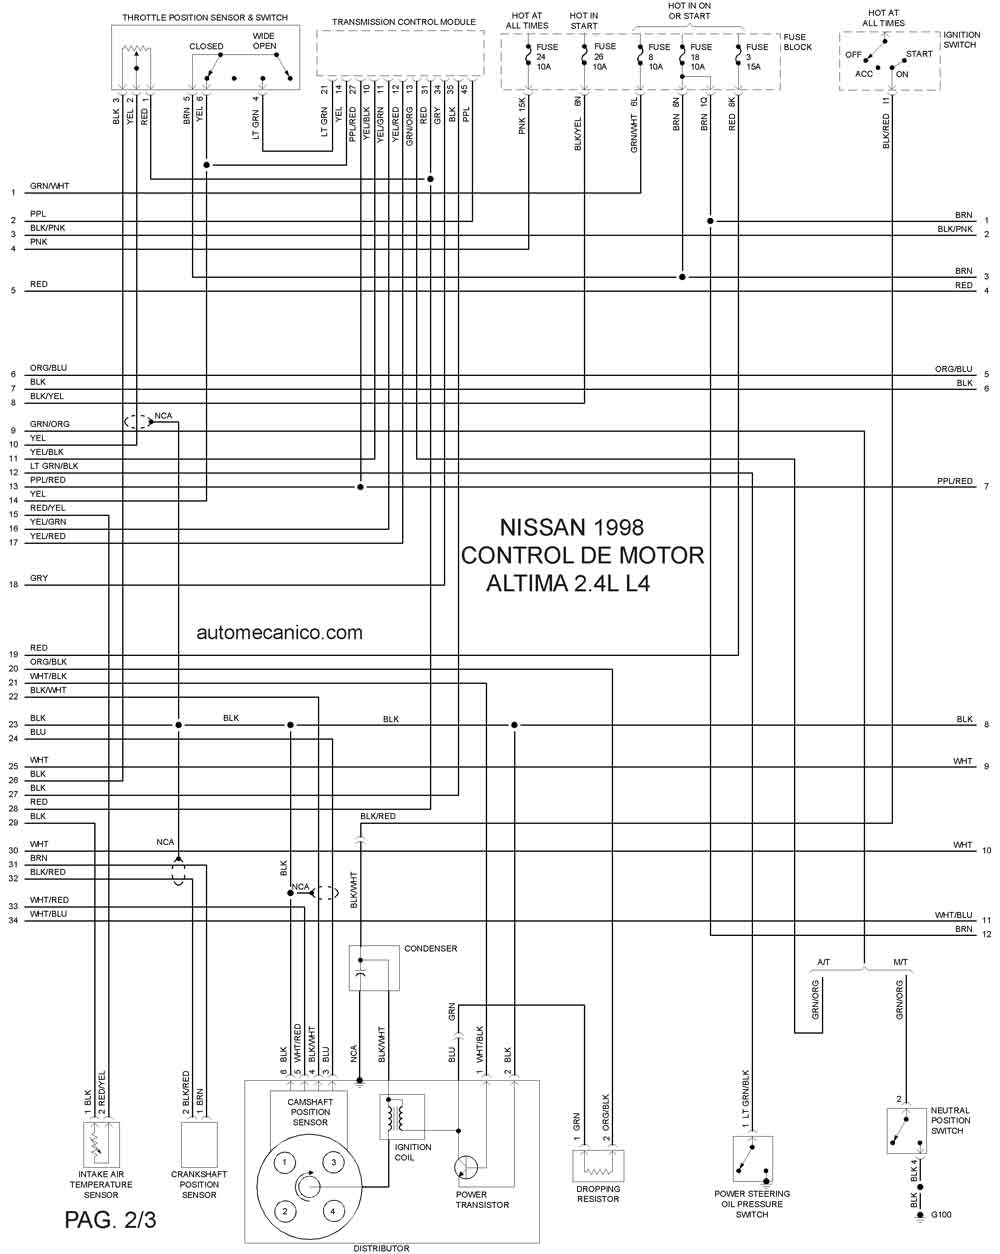 1997 Altima Fuse Diagram Schematics Wiring Diagrams 1999 Box Images Gallery